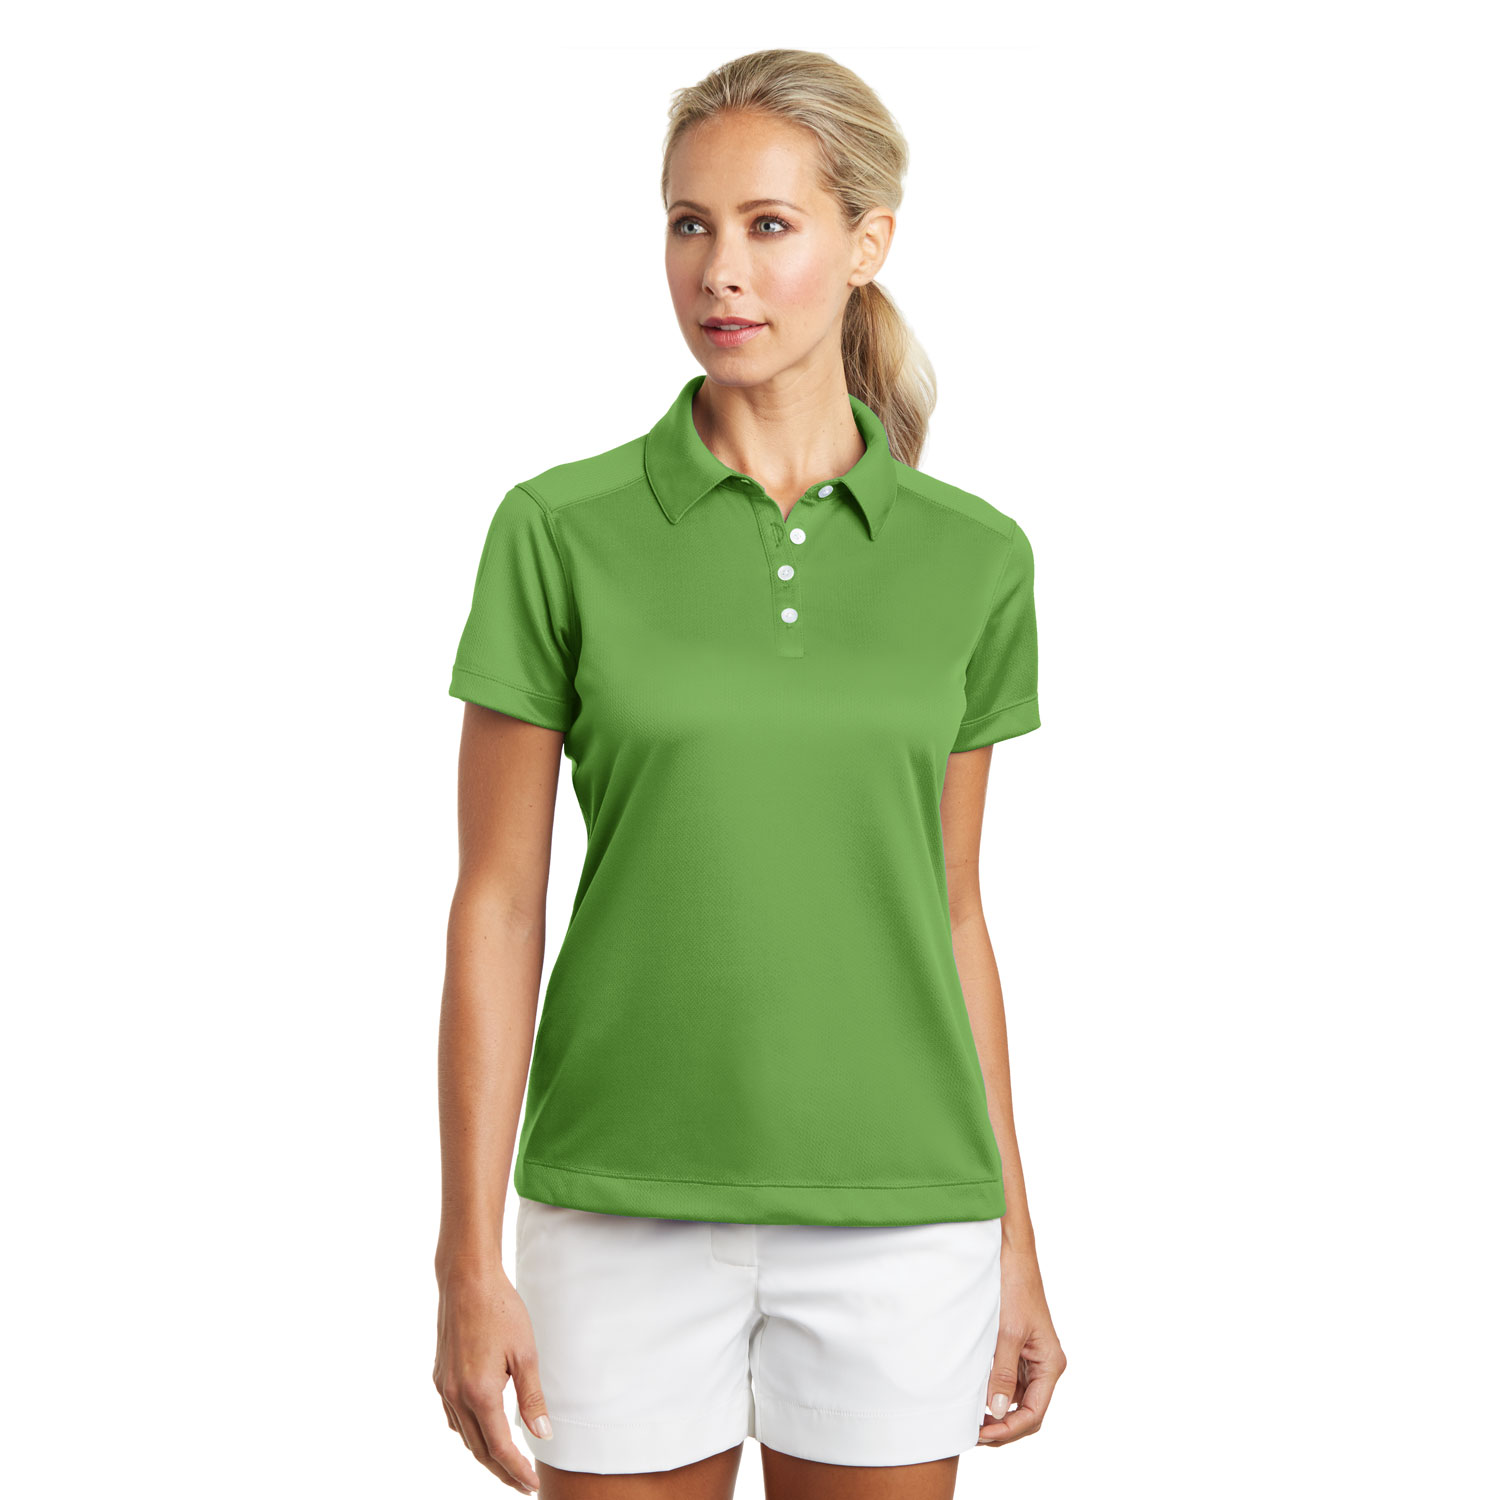 Nike Ladies Golf Polo Dry fit